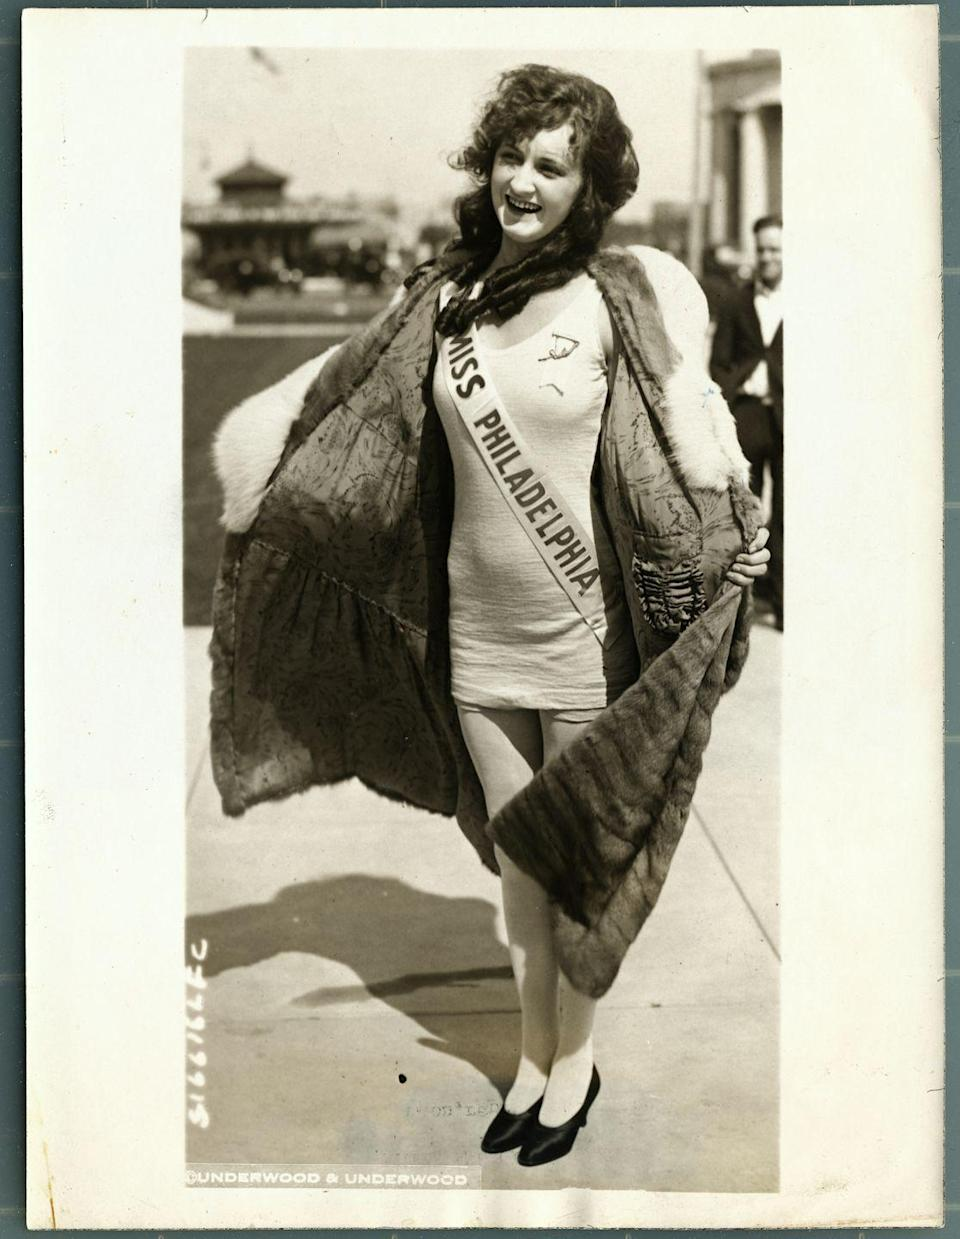 <p>Ruth Malcomson represented her home state of Pennsylvania in a swimsuit and fur-trimmed coat, and took home the coveted Golden Mermaid trophy that year.</p>